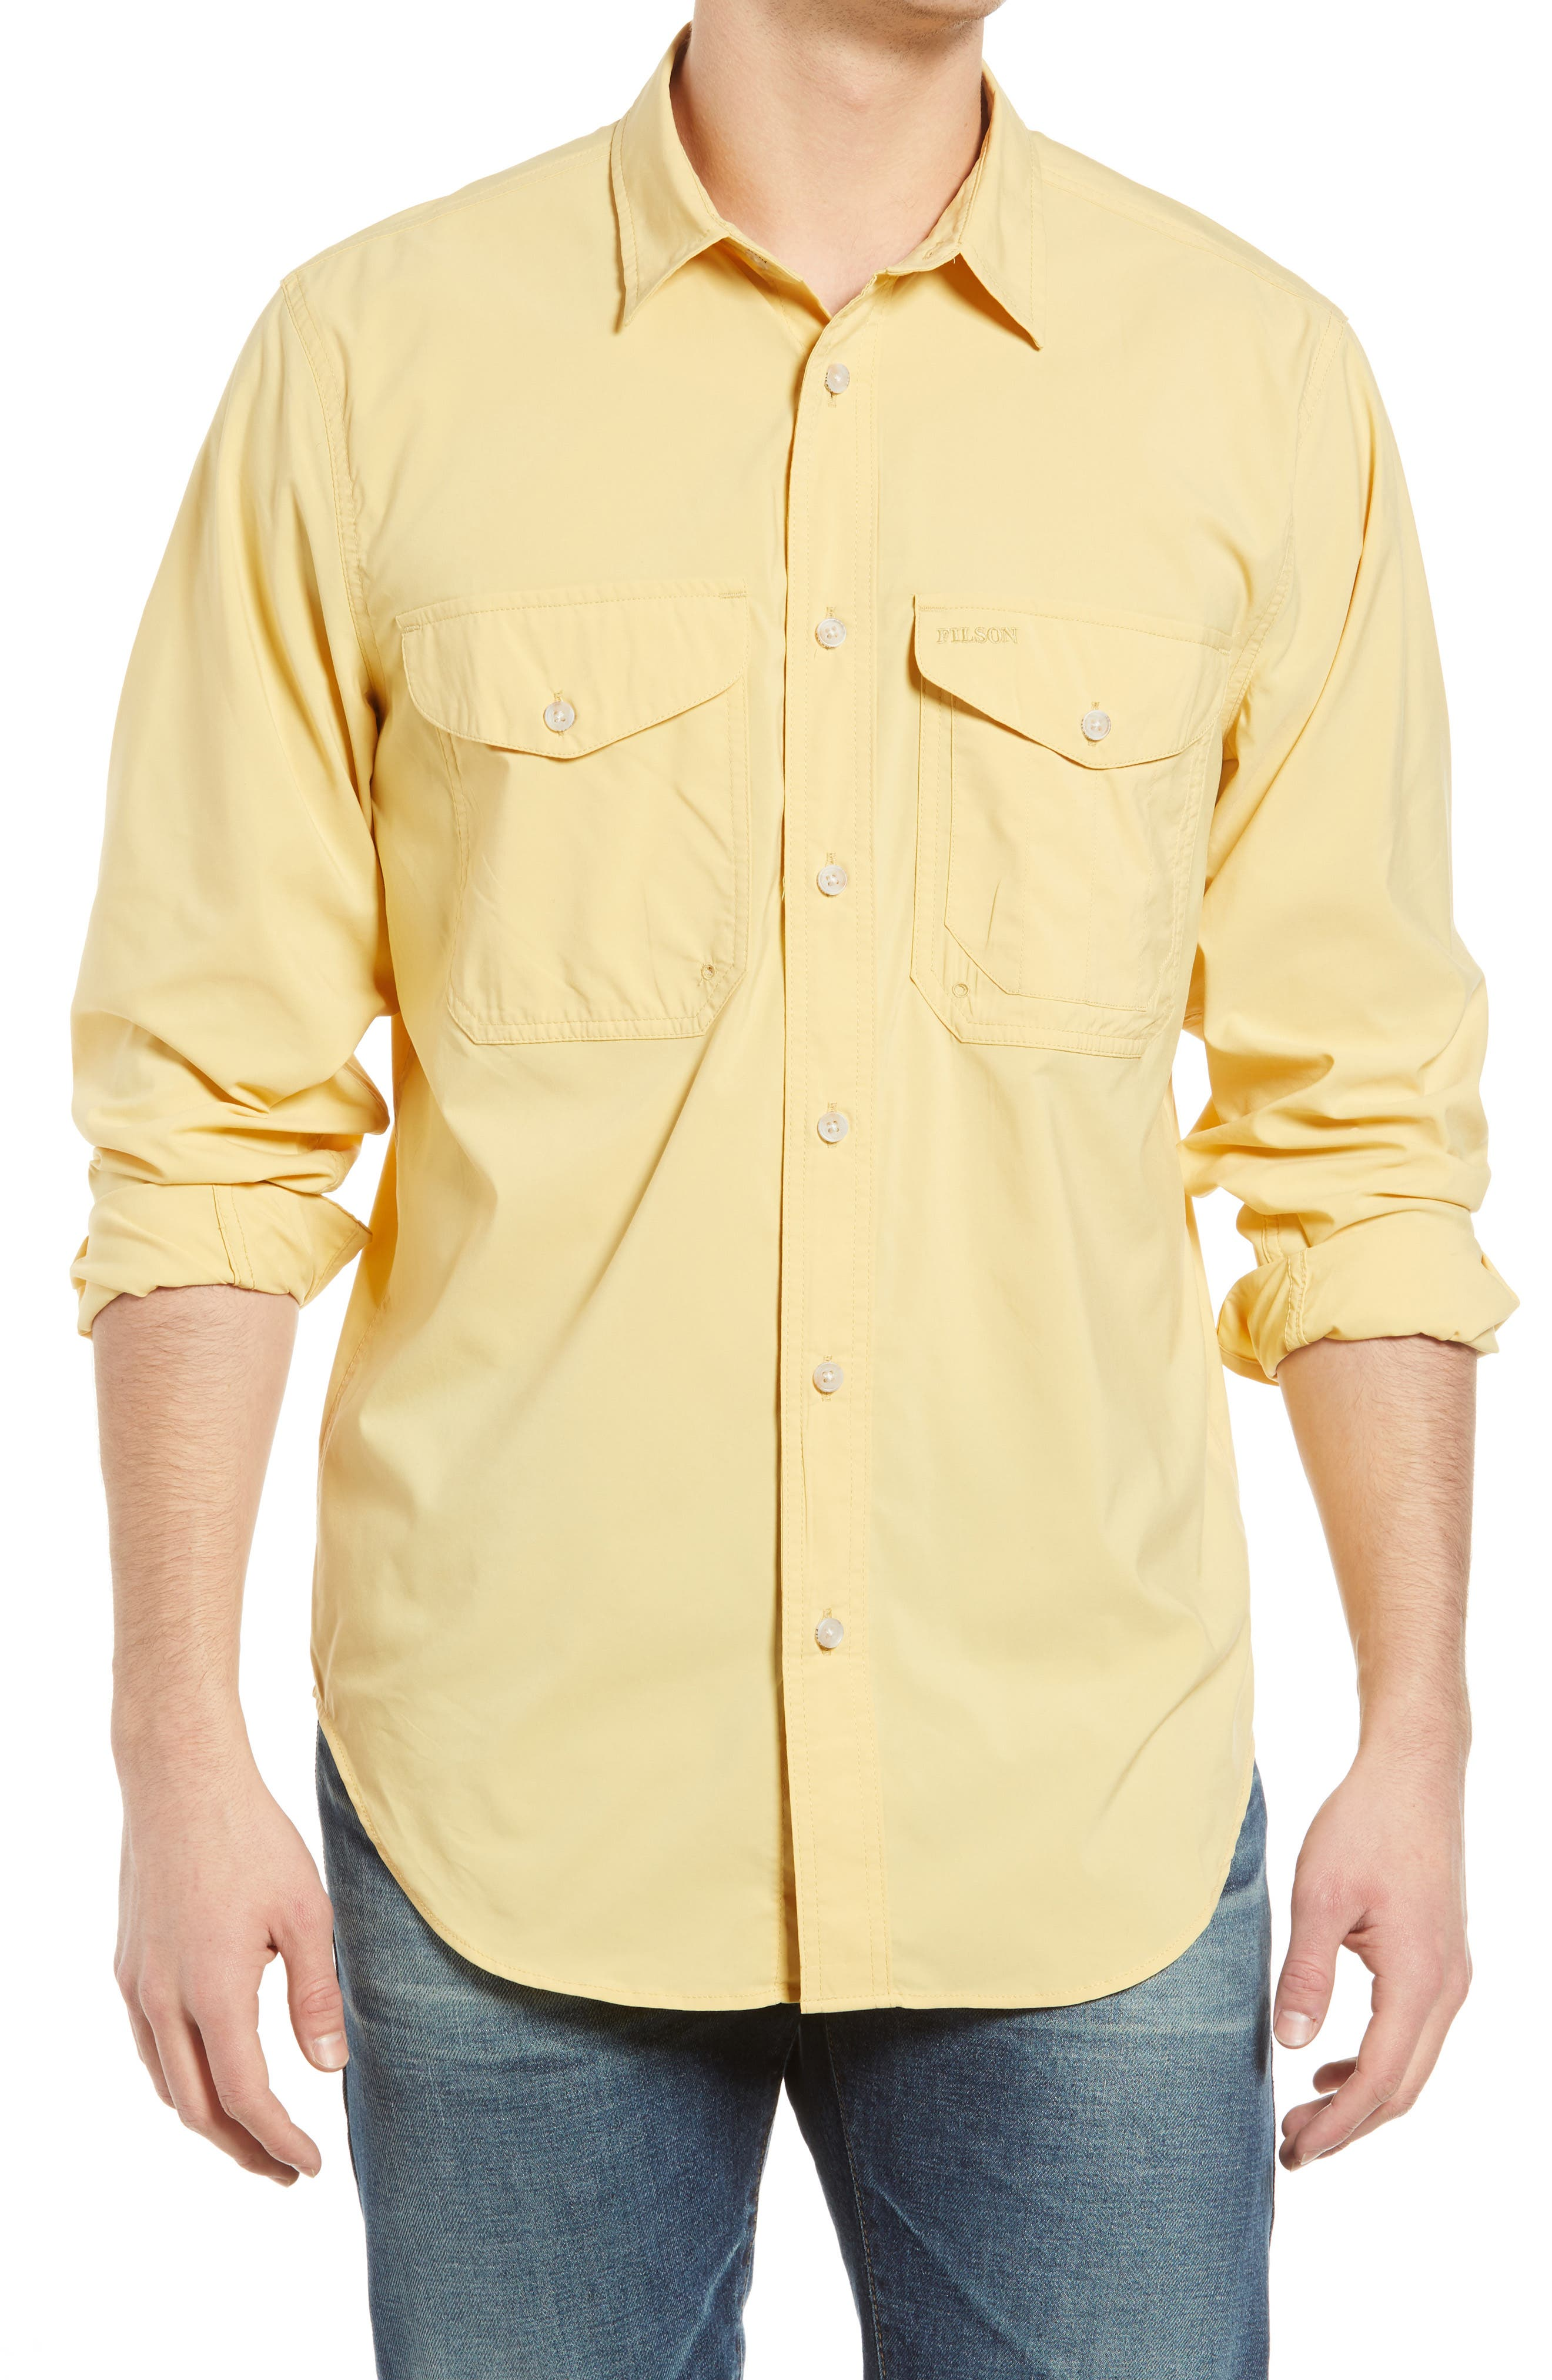 Twin Lakes Long Sleeve Button-Up Shirt